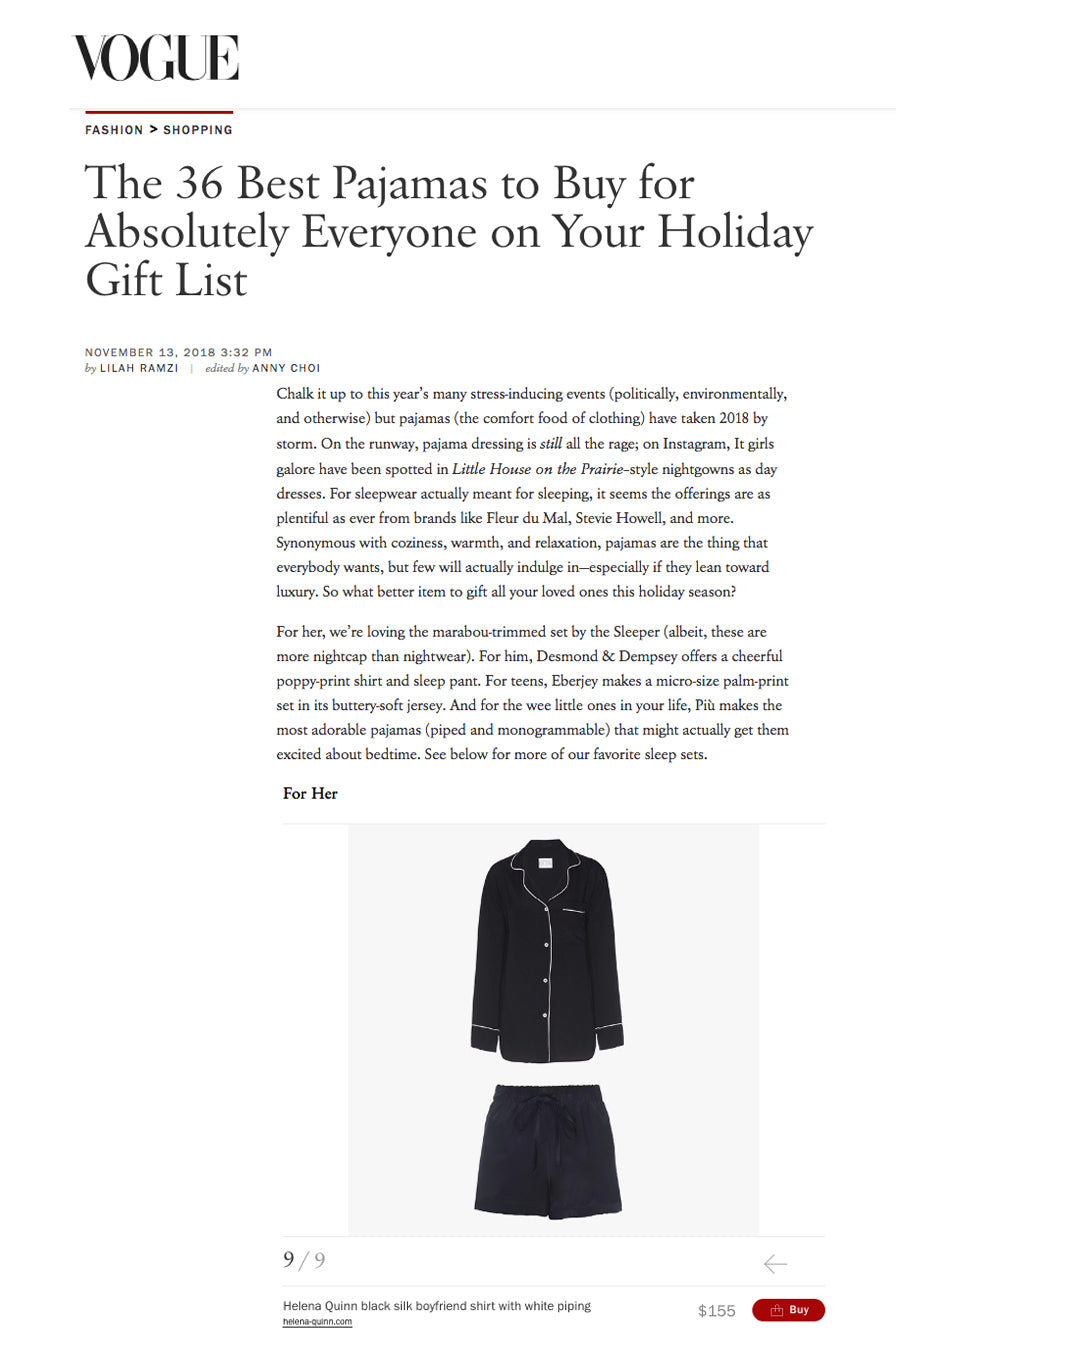 Helena Quinn / /  Vogue Magazine / / Black Silk Boyfriend Shirt